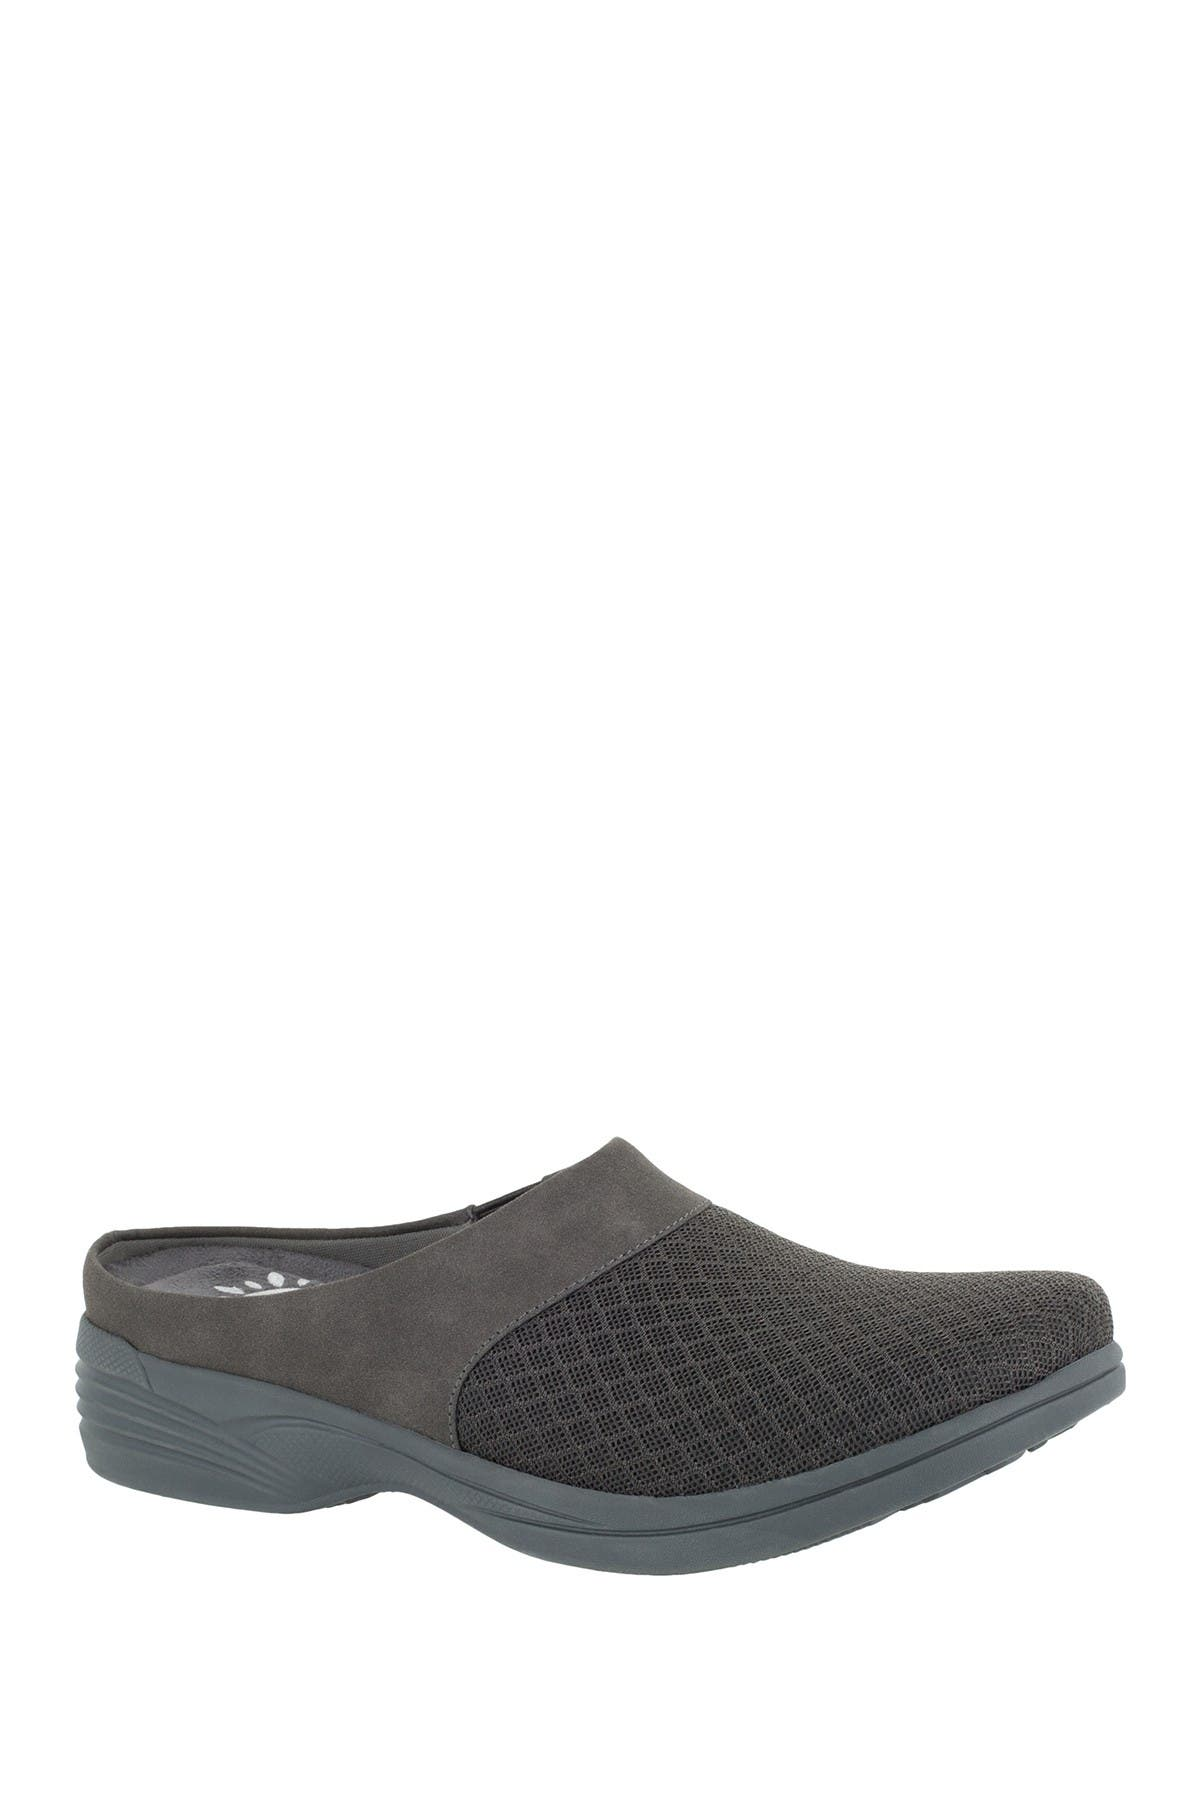 Image of EASY STREET So Lite Comfort Mule - Multiple Widths Available